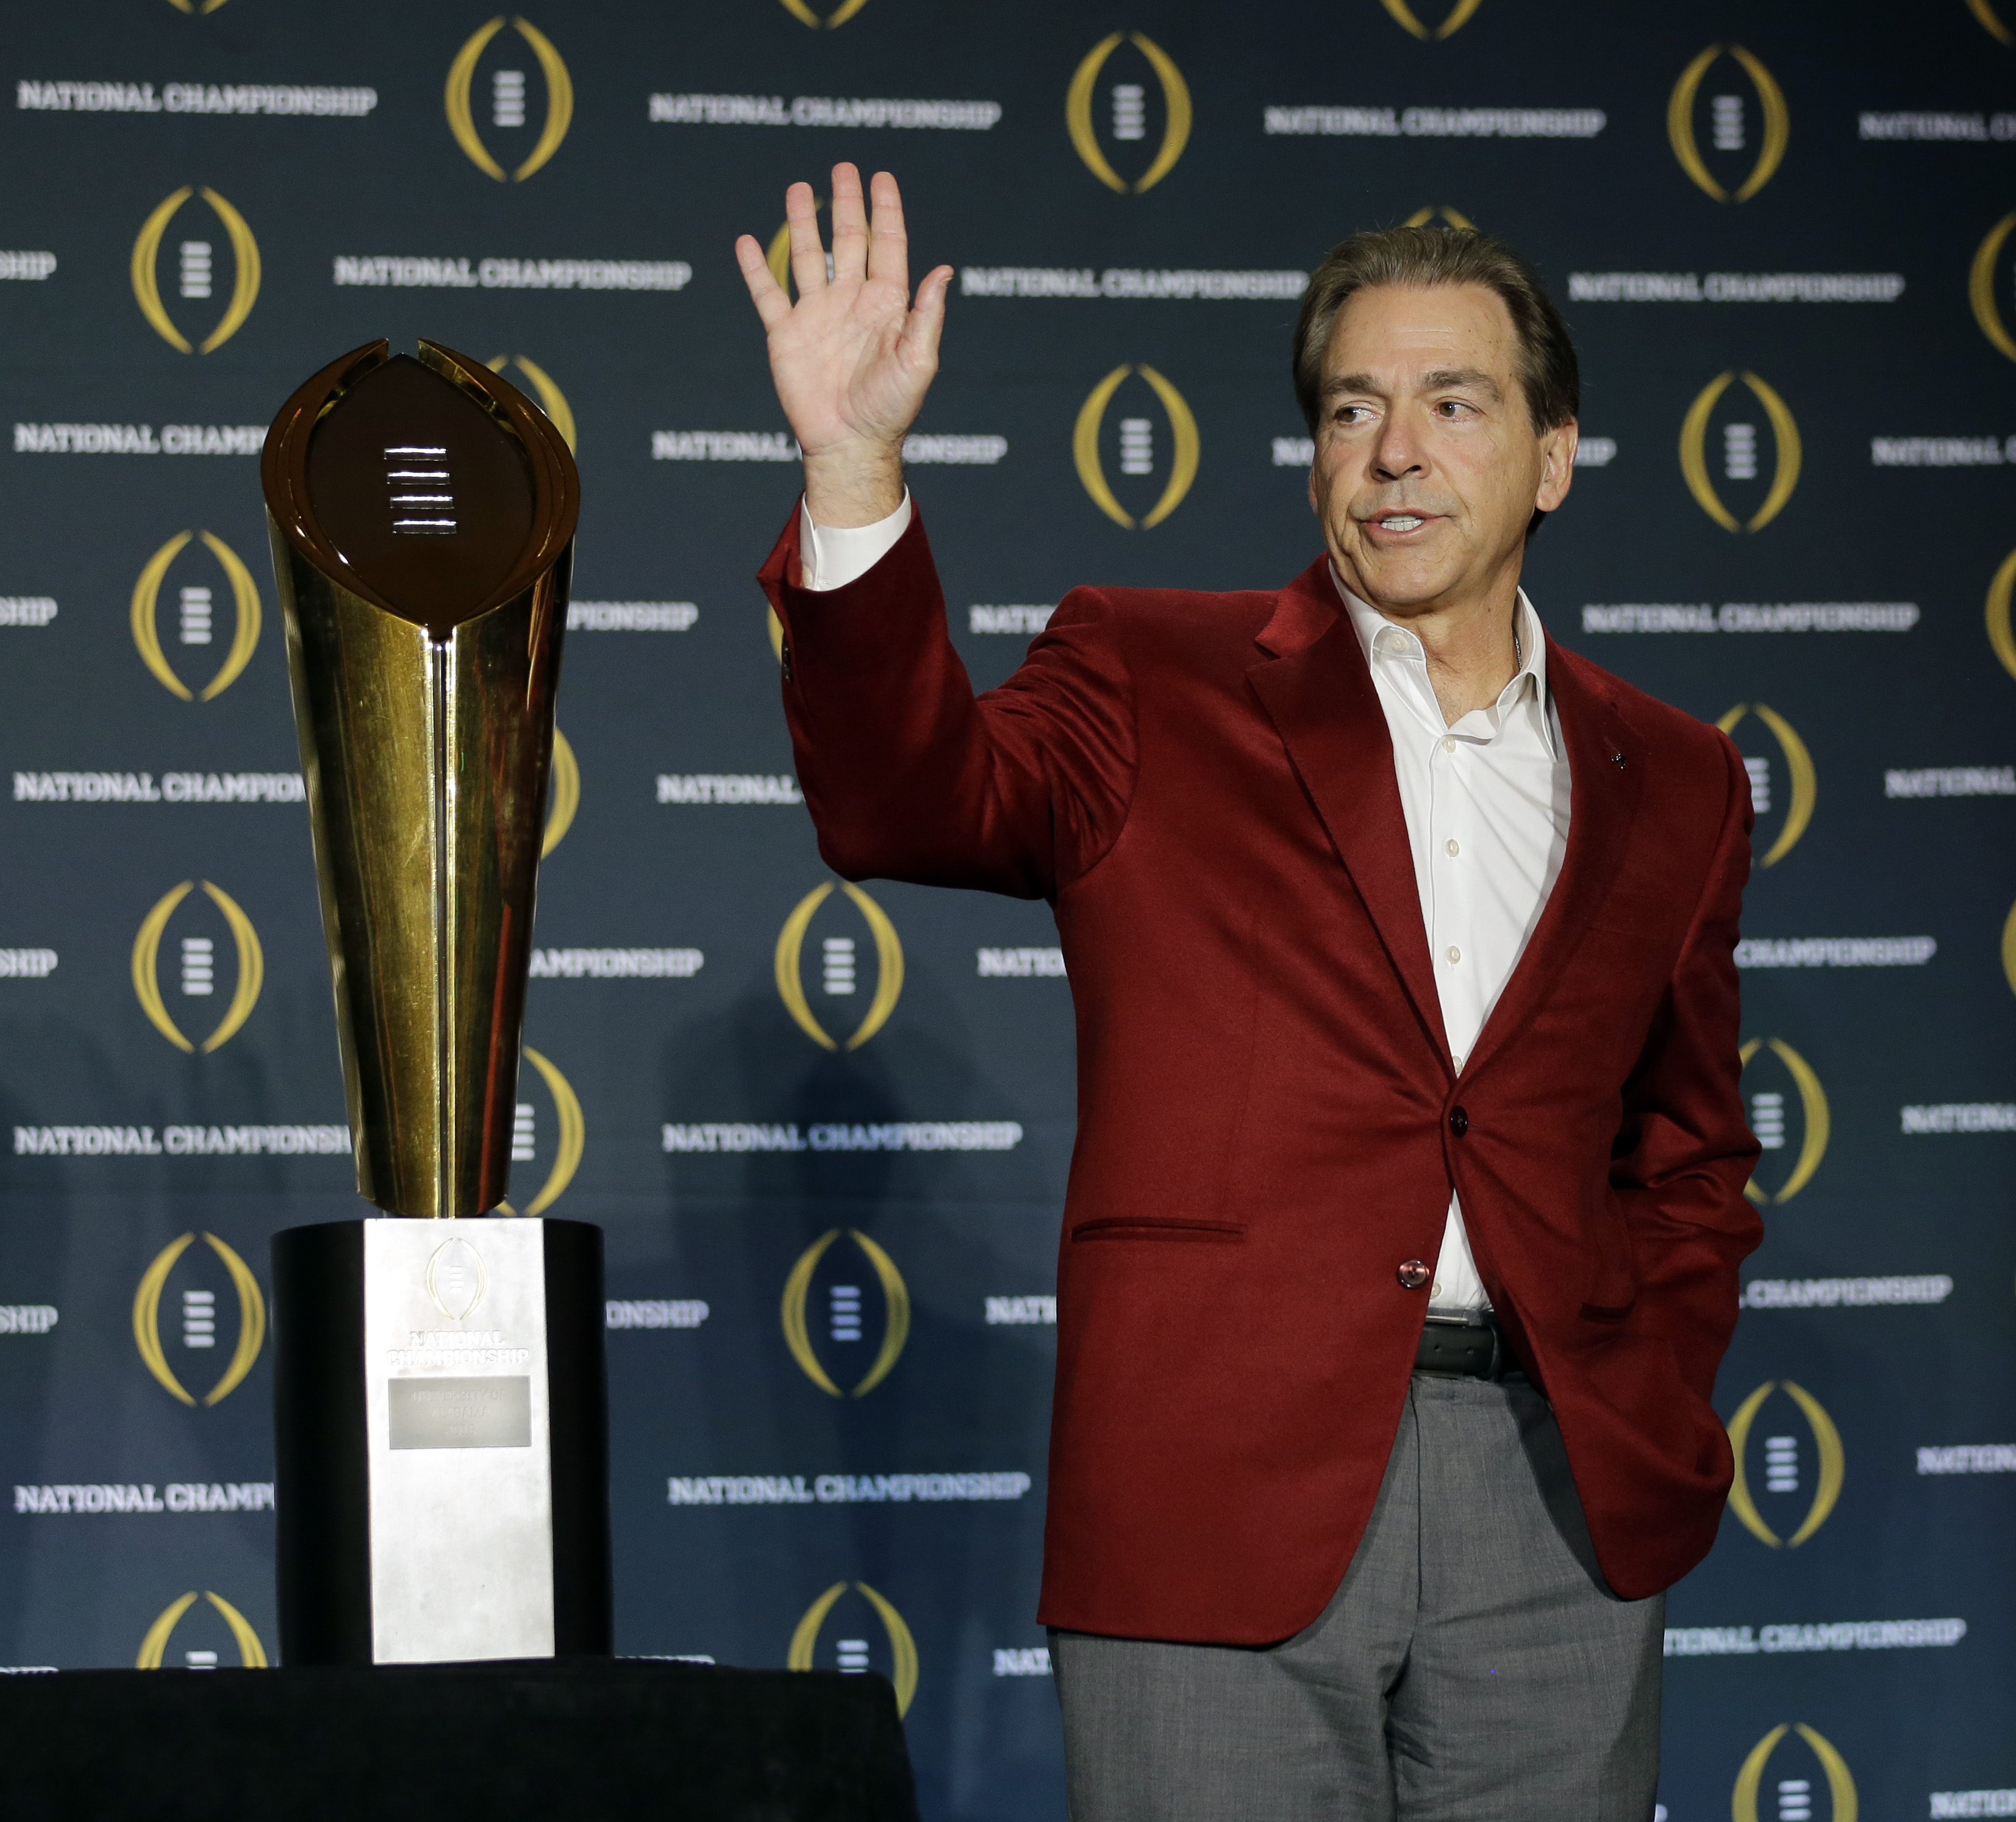 Alabama head coach Nick Saban poses with the championship trophy during a news conference for the NCAA college football playoff championship Tuesday, Jan. 12, 2016, in Scottsdale, Ariz. Alabama beat Clemson 45-40 to win the championship. (AP Photo/David J